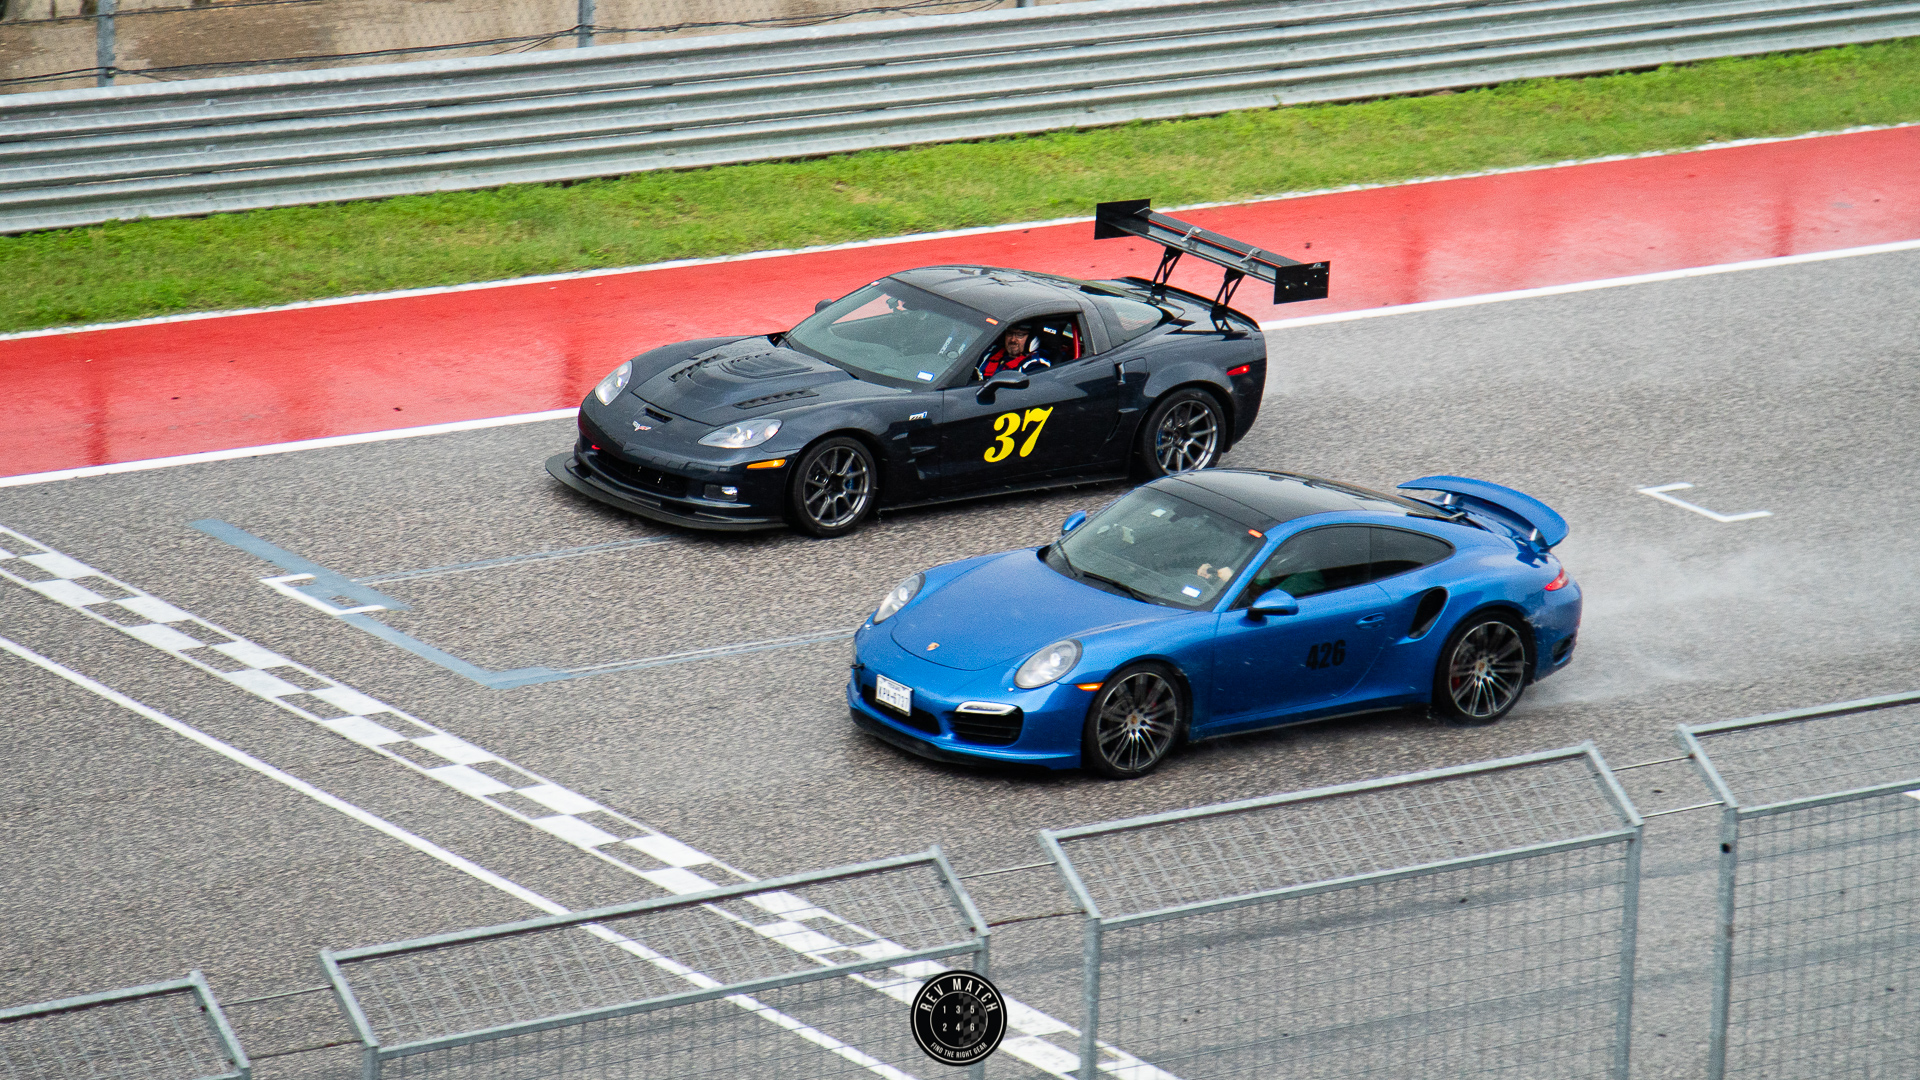 Edge Addict COTA May 2019 Rev Match Media-25.jpg